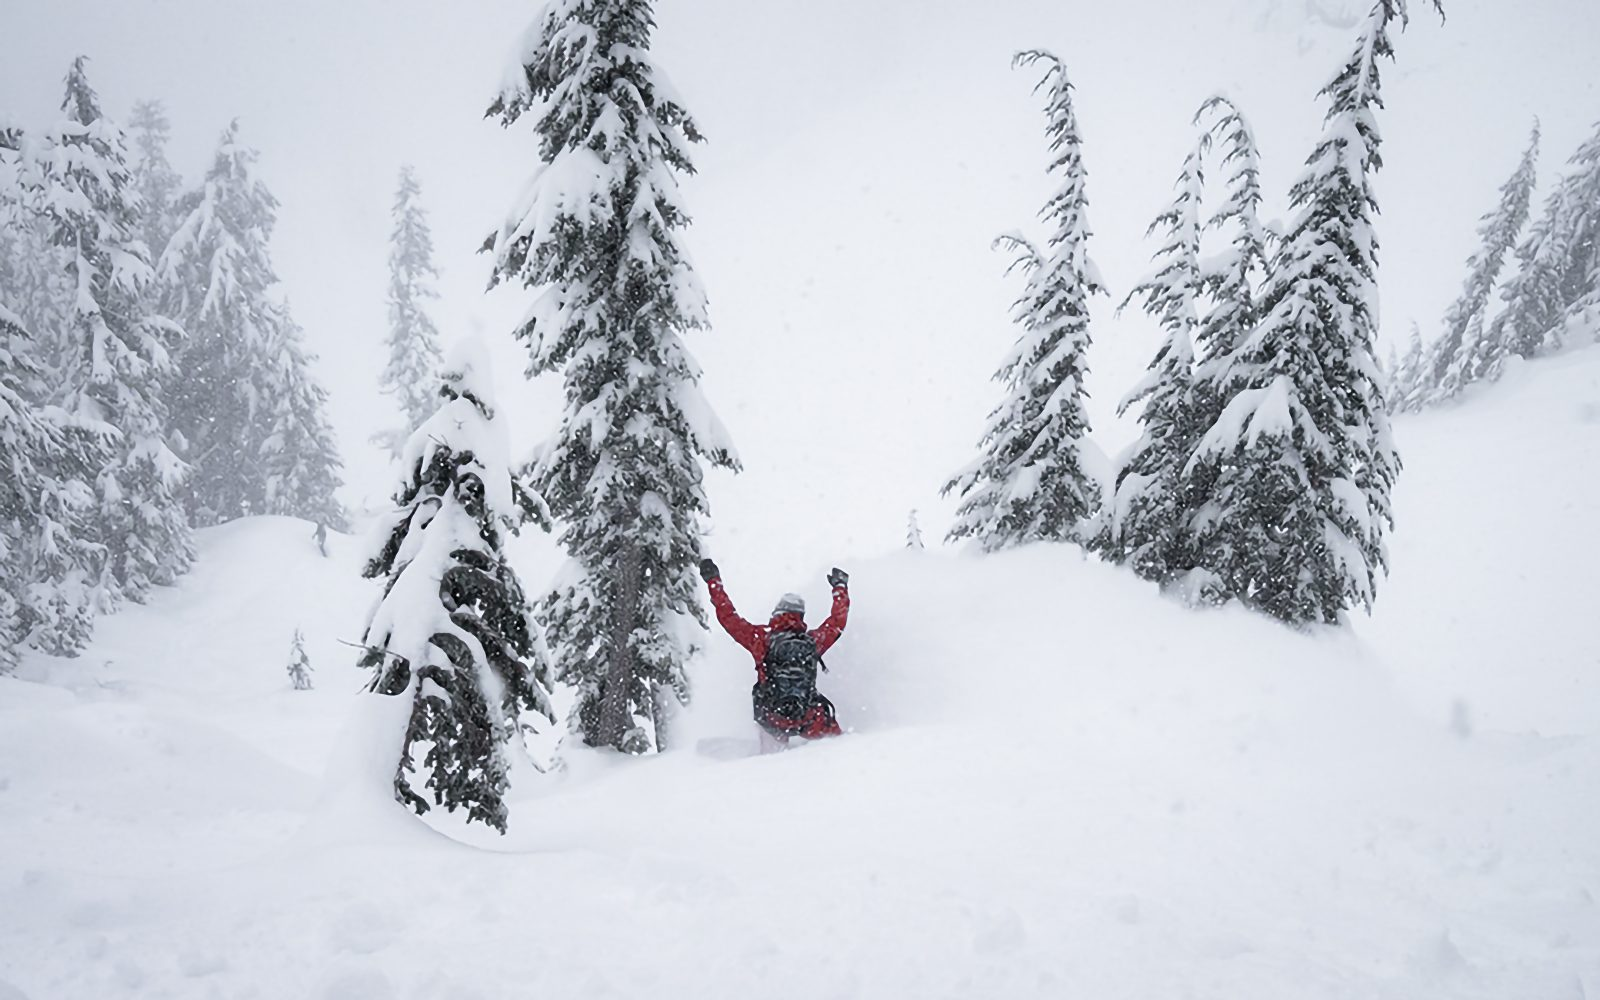 Pacific Northwest's First Major Storm of 2020